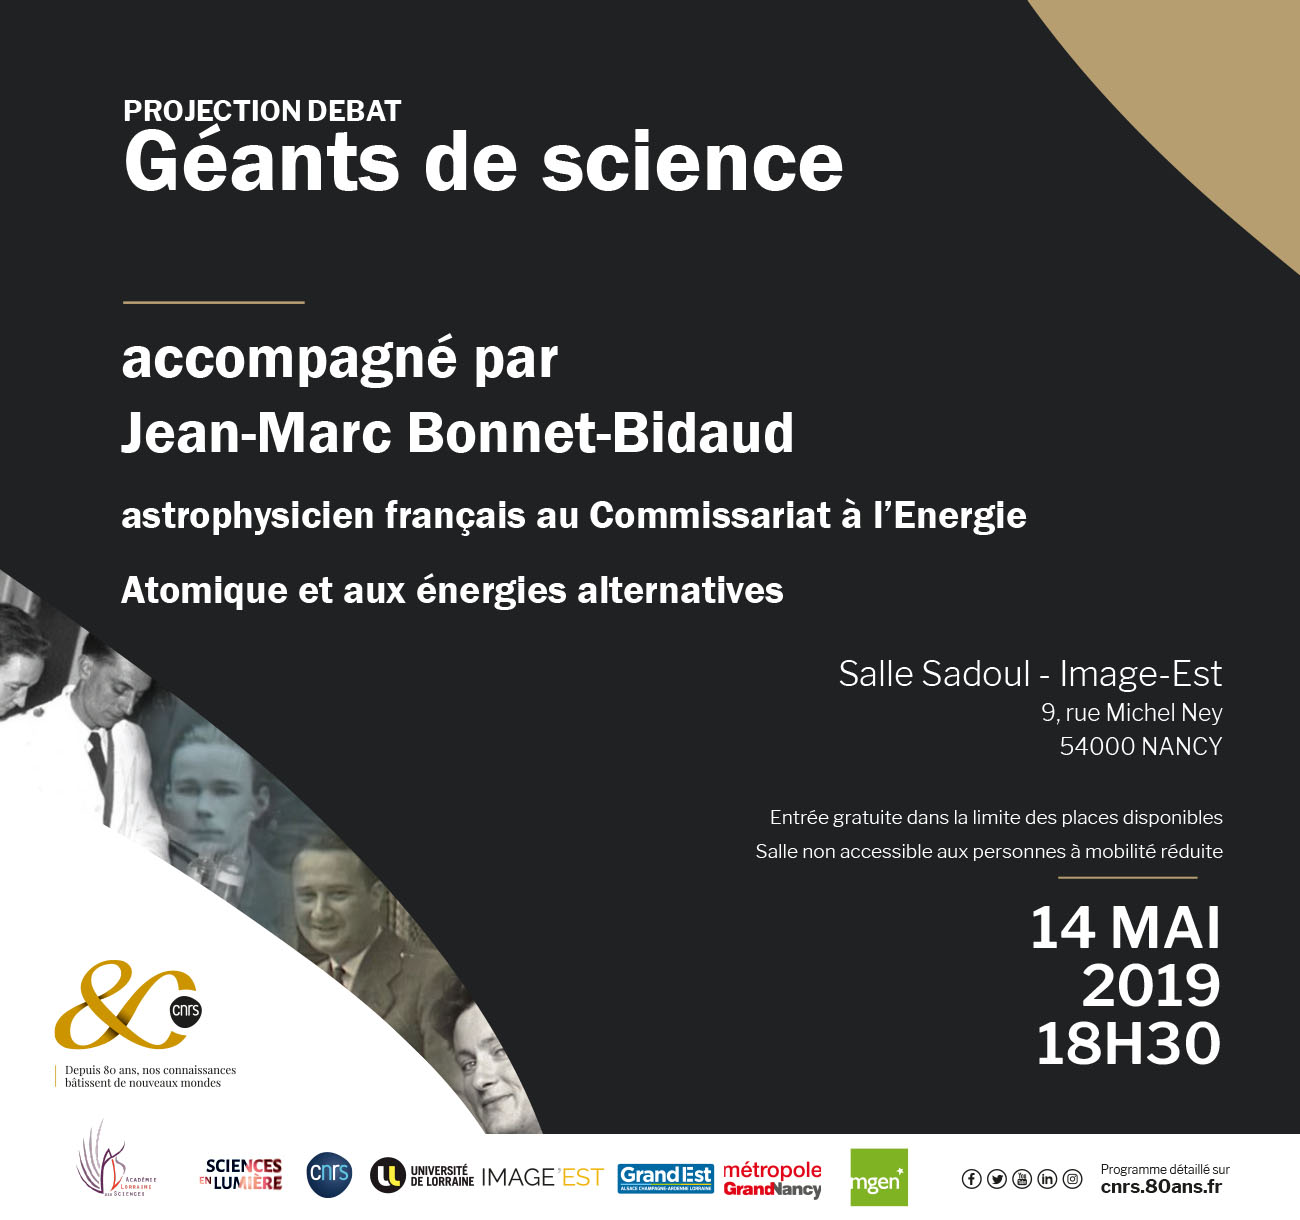 Géants de Science – Projection débat